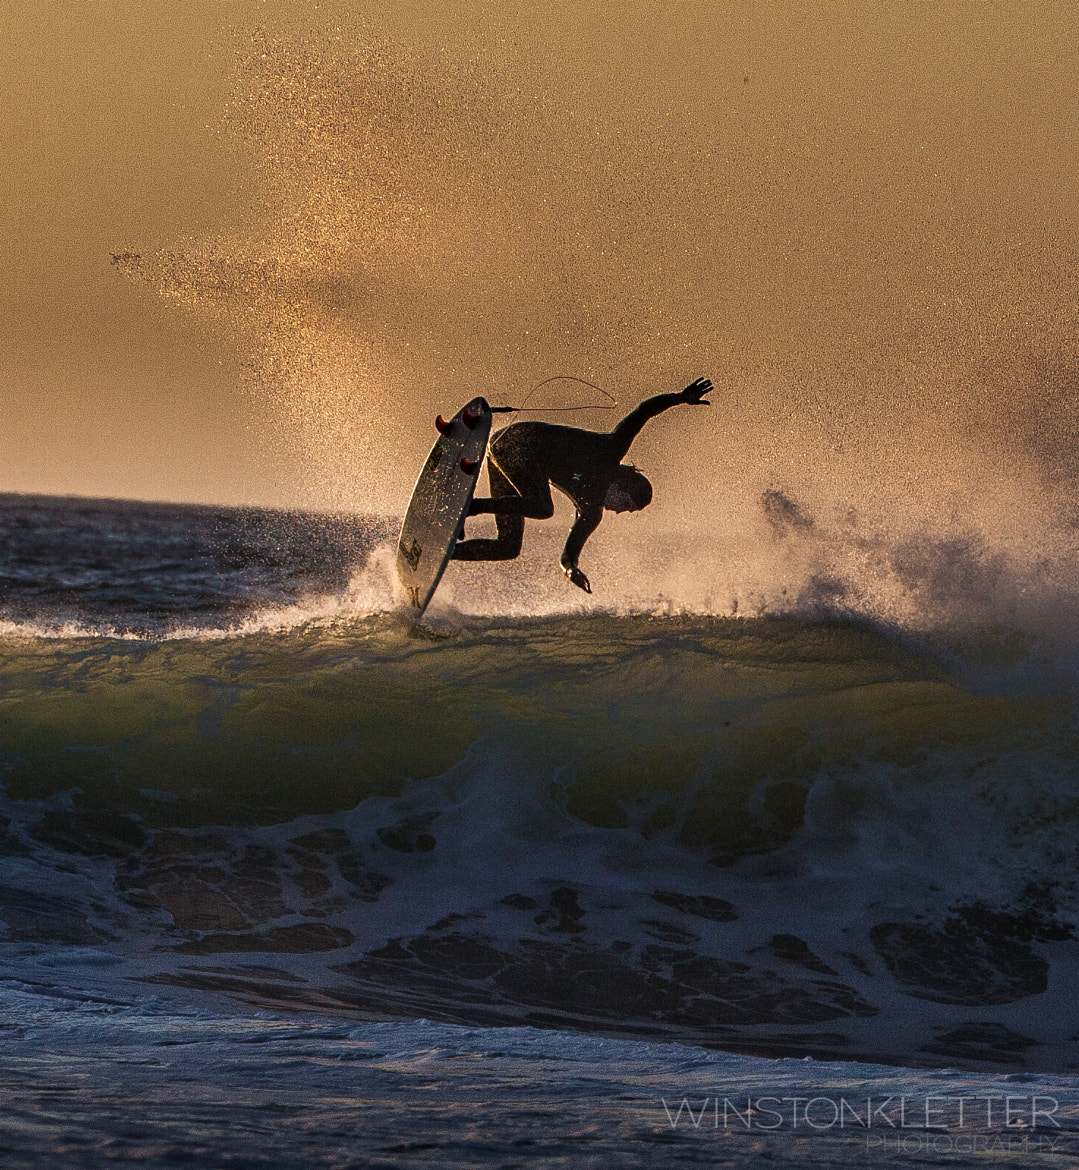 Photograph Paul Daniels 360 Air by Winston Kletter on 500px